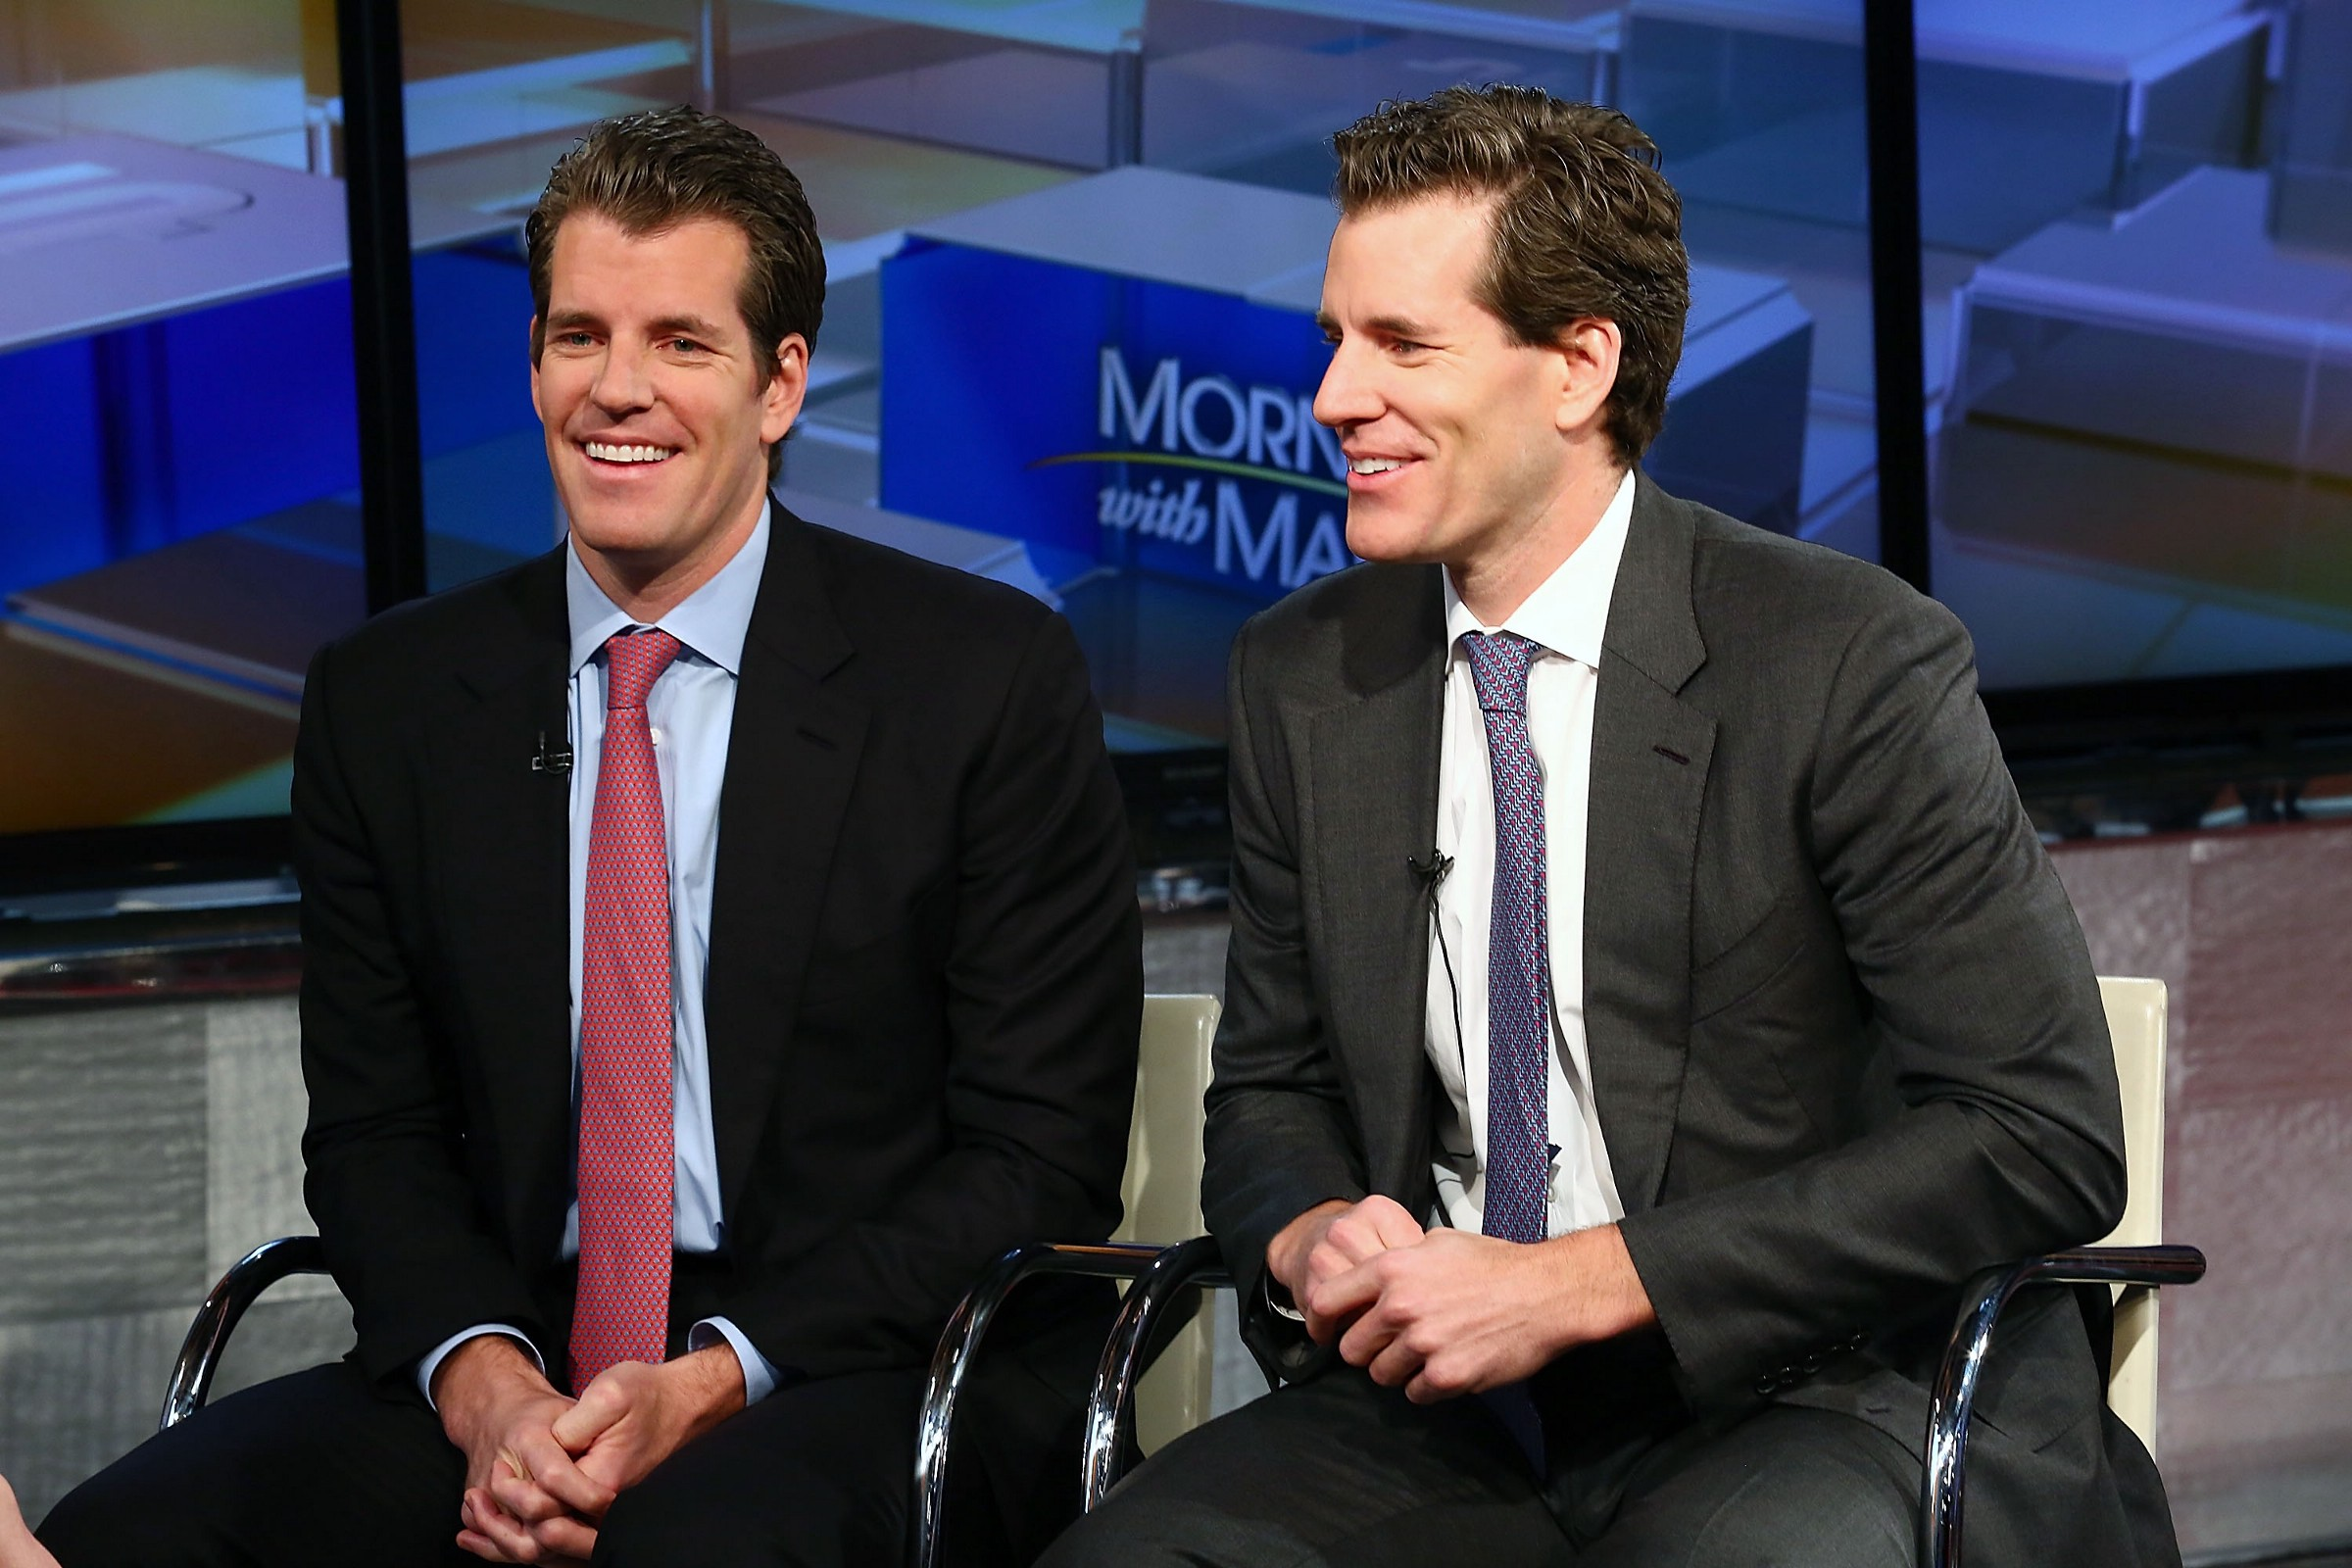 'I Love Billionaires': Author Ben Mezrich on the Winklevoss Twins and Writing the Cryptocurrency Narrative